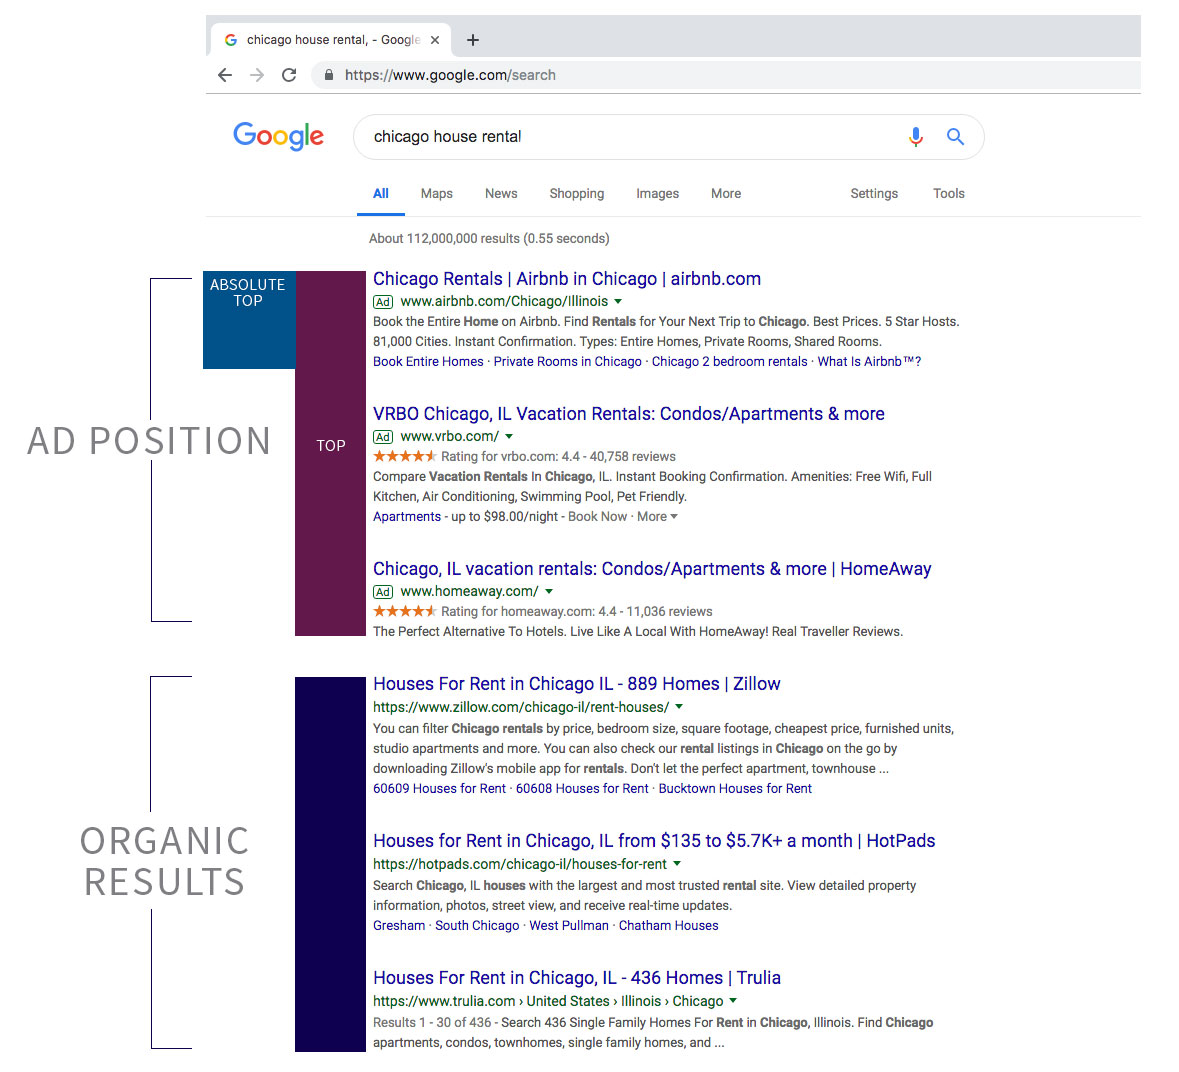 Photo showing ad position placement, including Absolute Top, versus organic results.